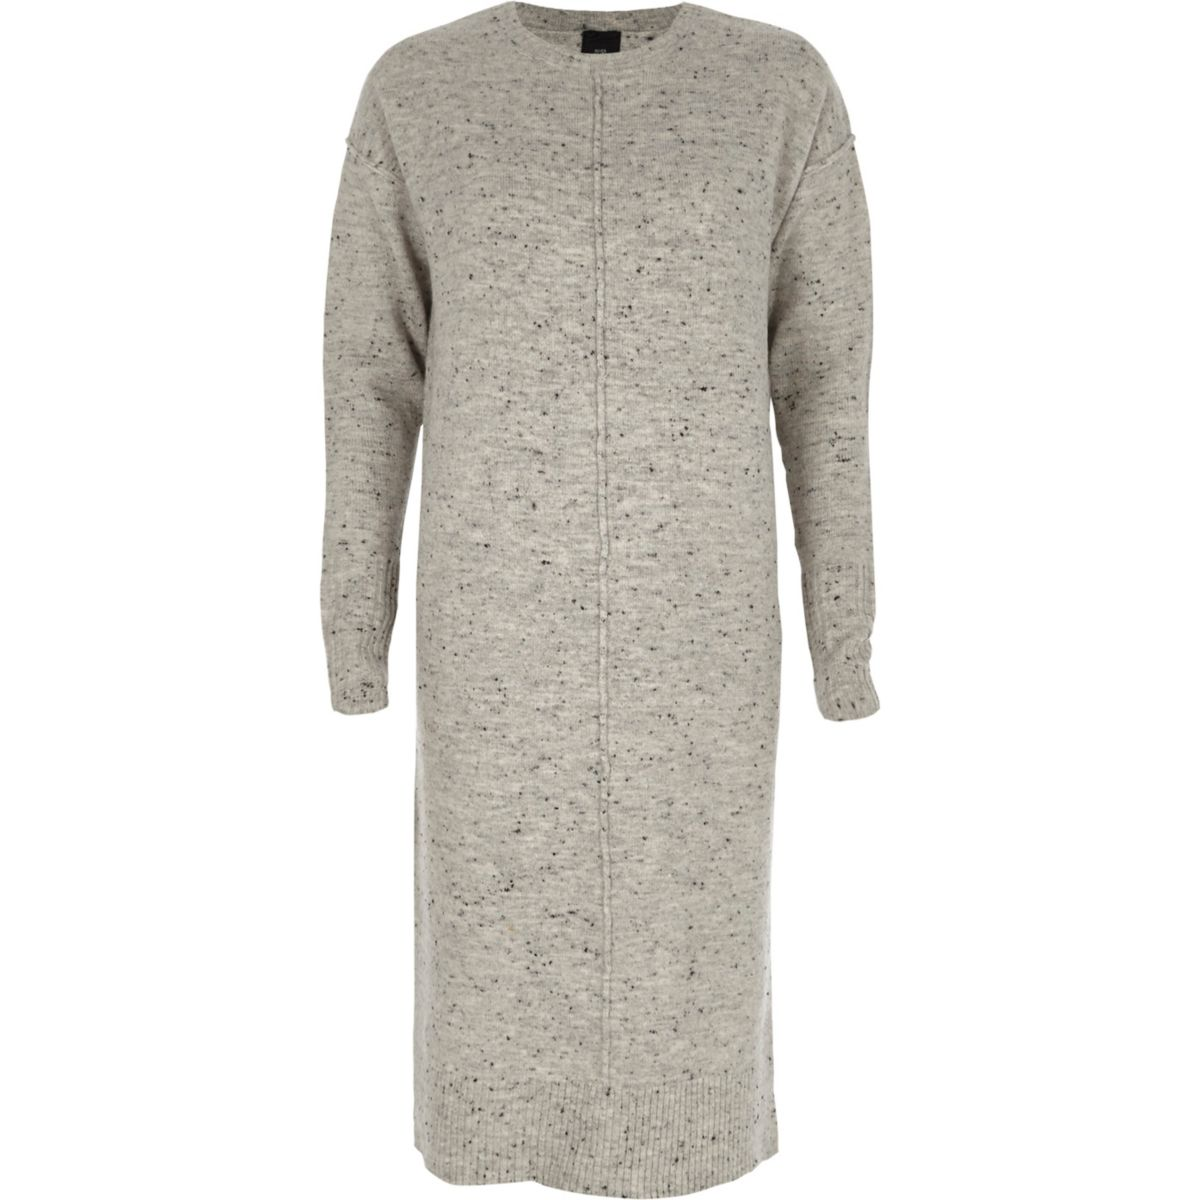 Grey neppy long sleeve knitted midi dress